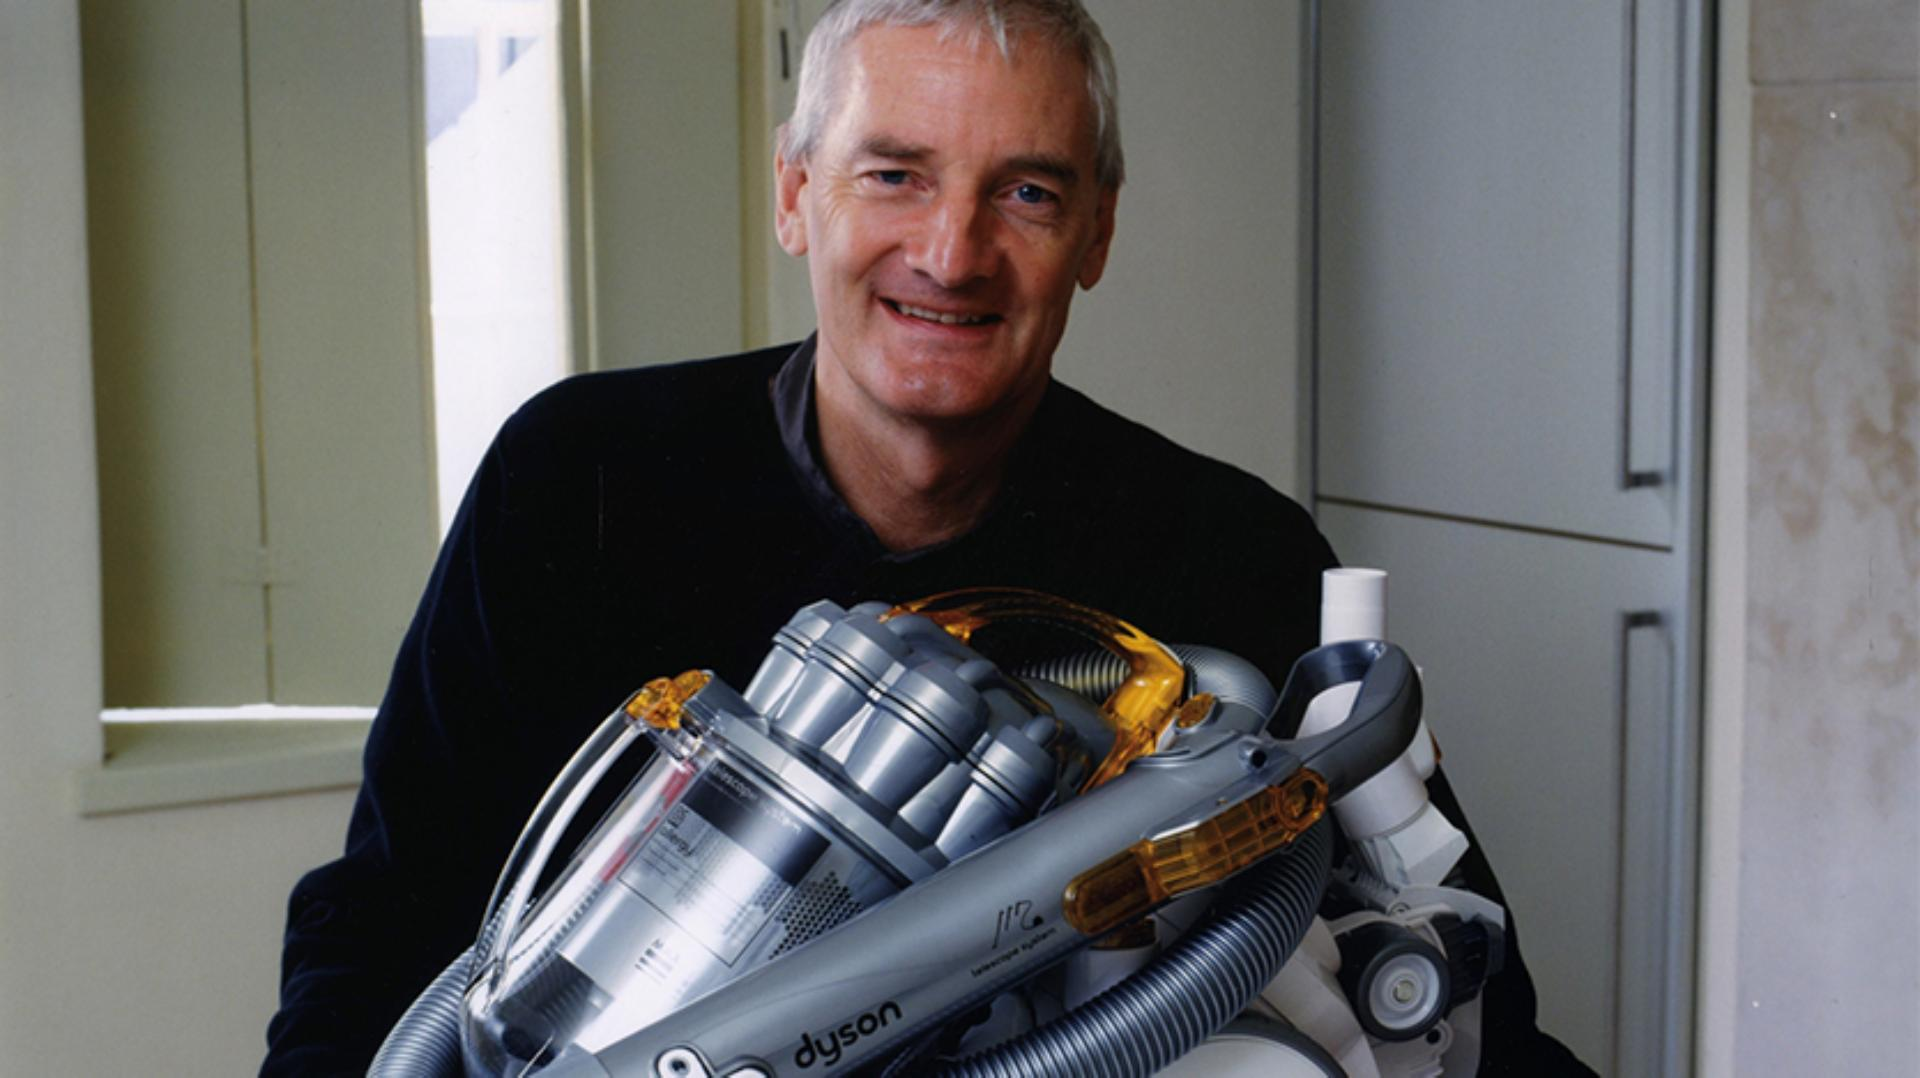 James Dyson sitting with a DC08 vacuum